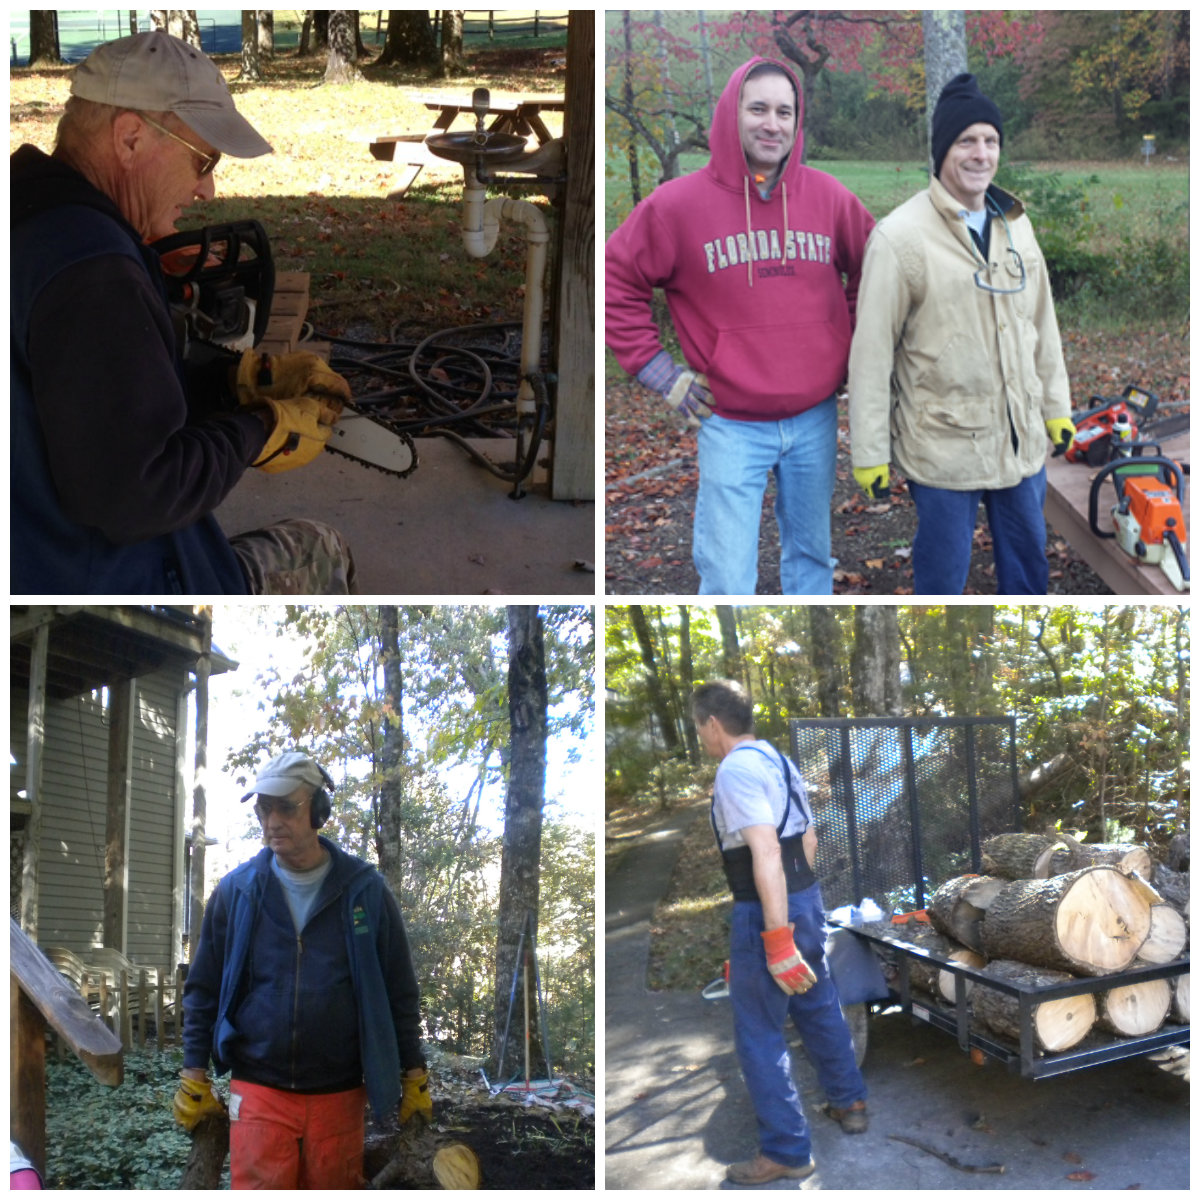 Tree Cutting Crew are dropping and cutting up several trees around the Ranch. TEAM MEMBERS: Jim Bishop, Sam Ehlers, and Rich Johnson.